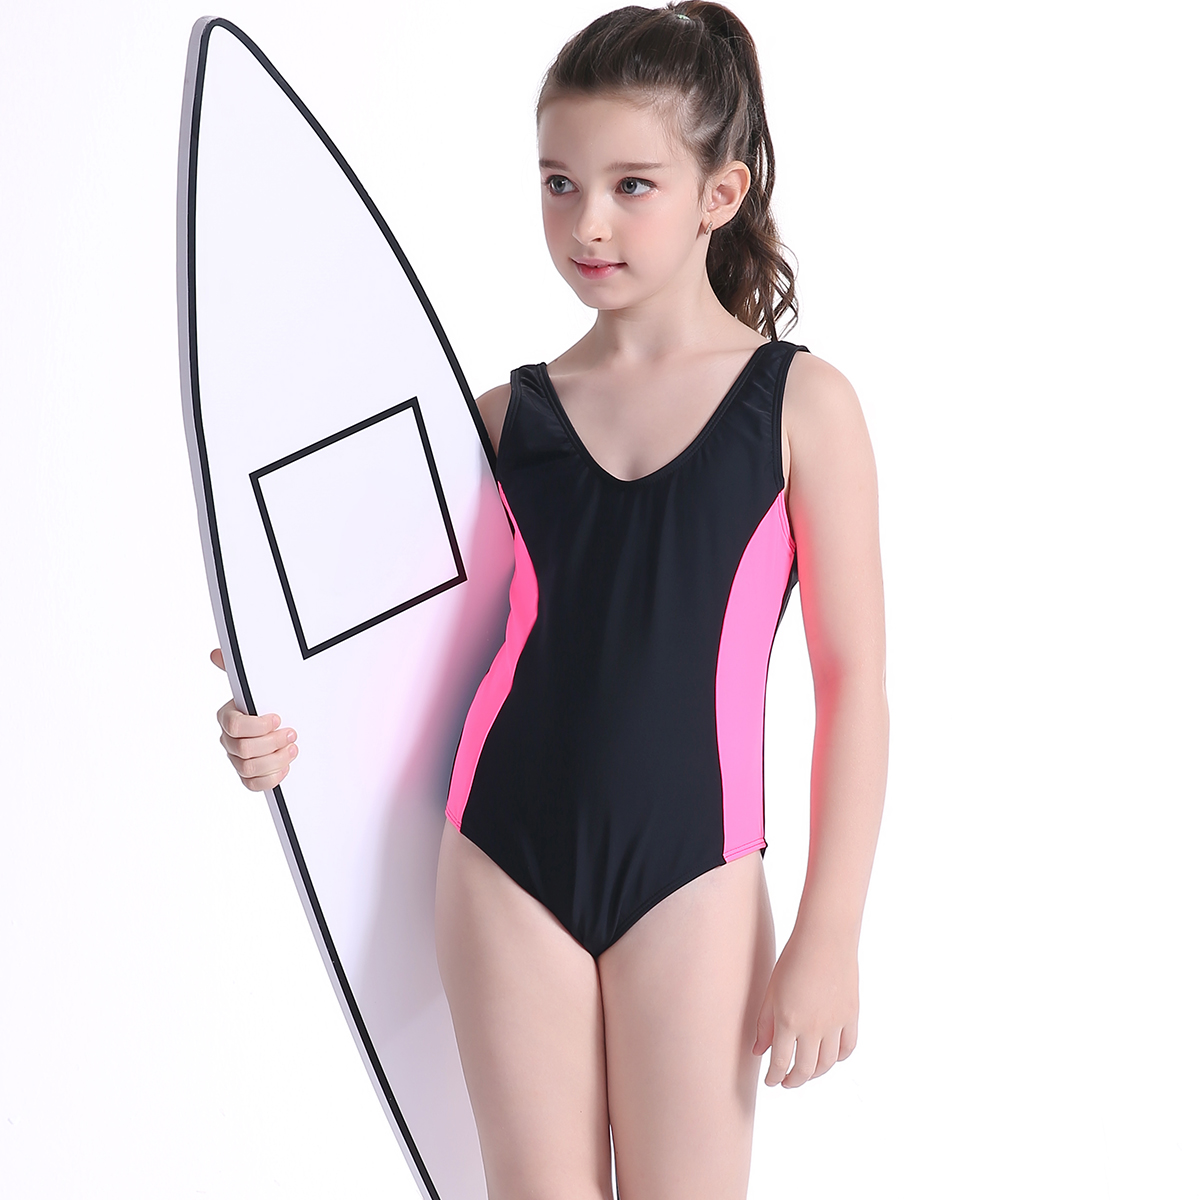 6e410e97a9 2017 Children Swimwear Girl Professional Swimsuit Child Girls Sports Swimwear  Bikini Baby Bathing Suit Swim wear